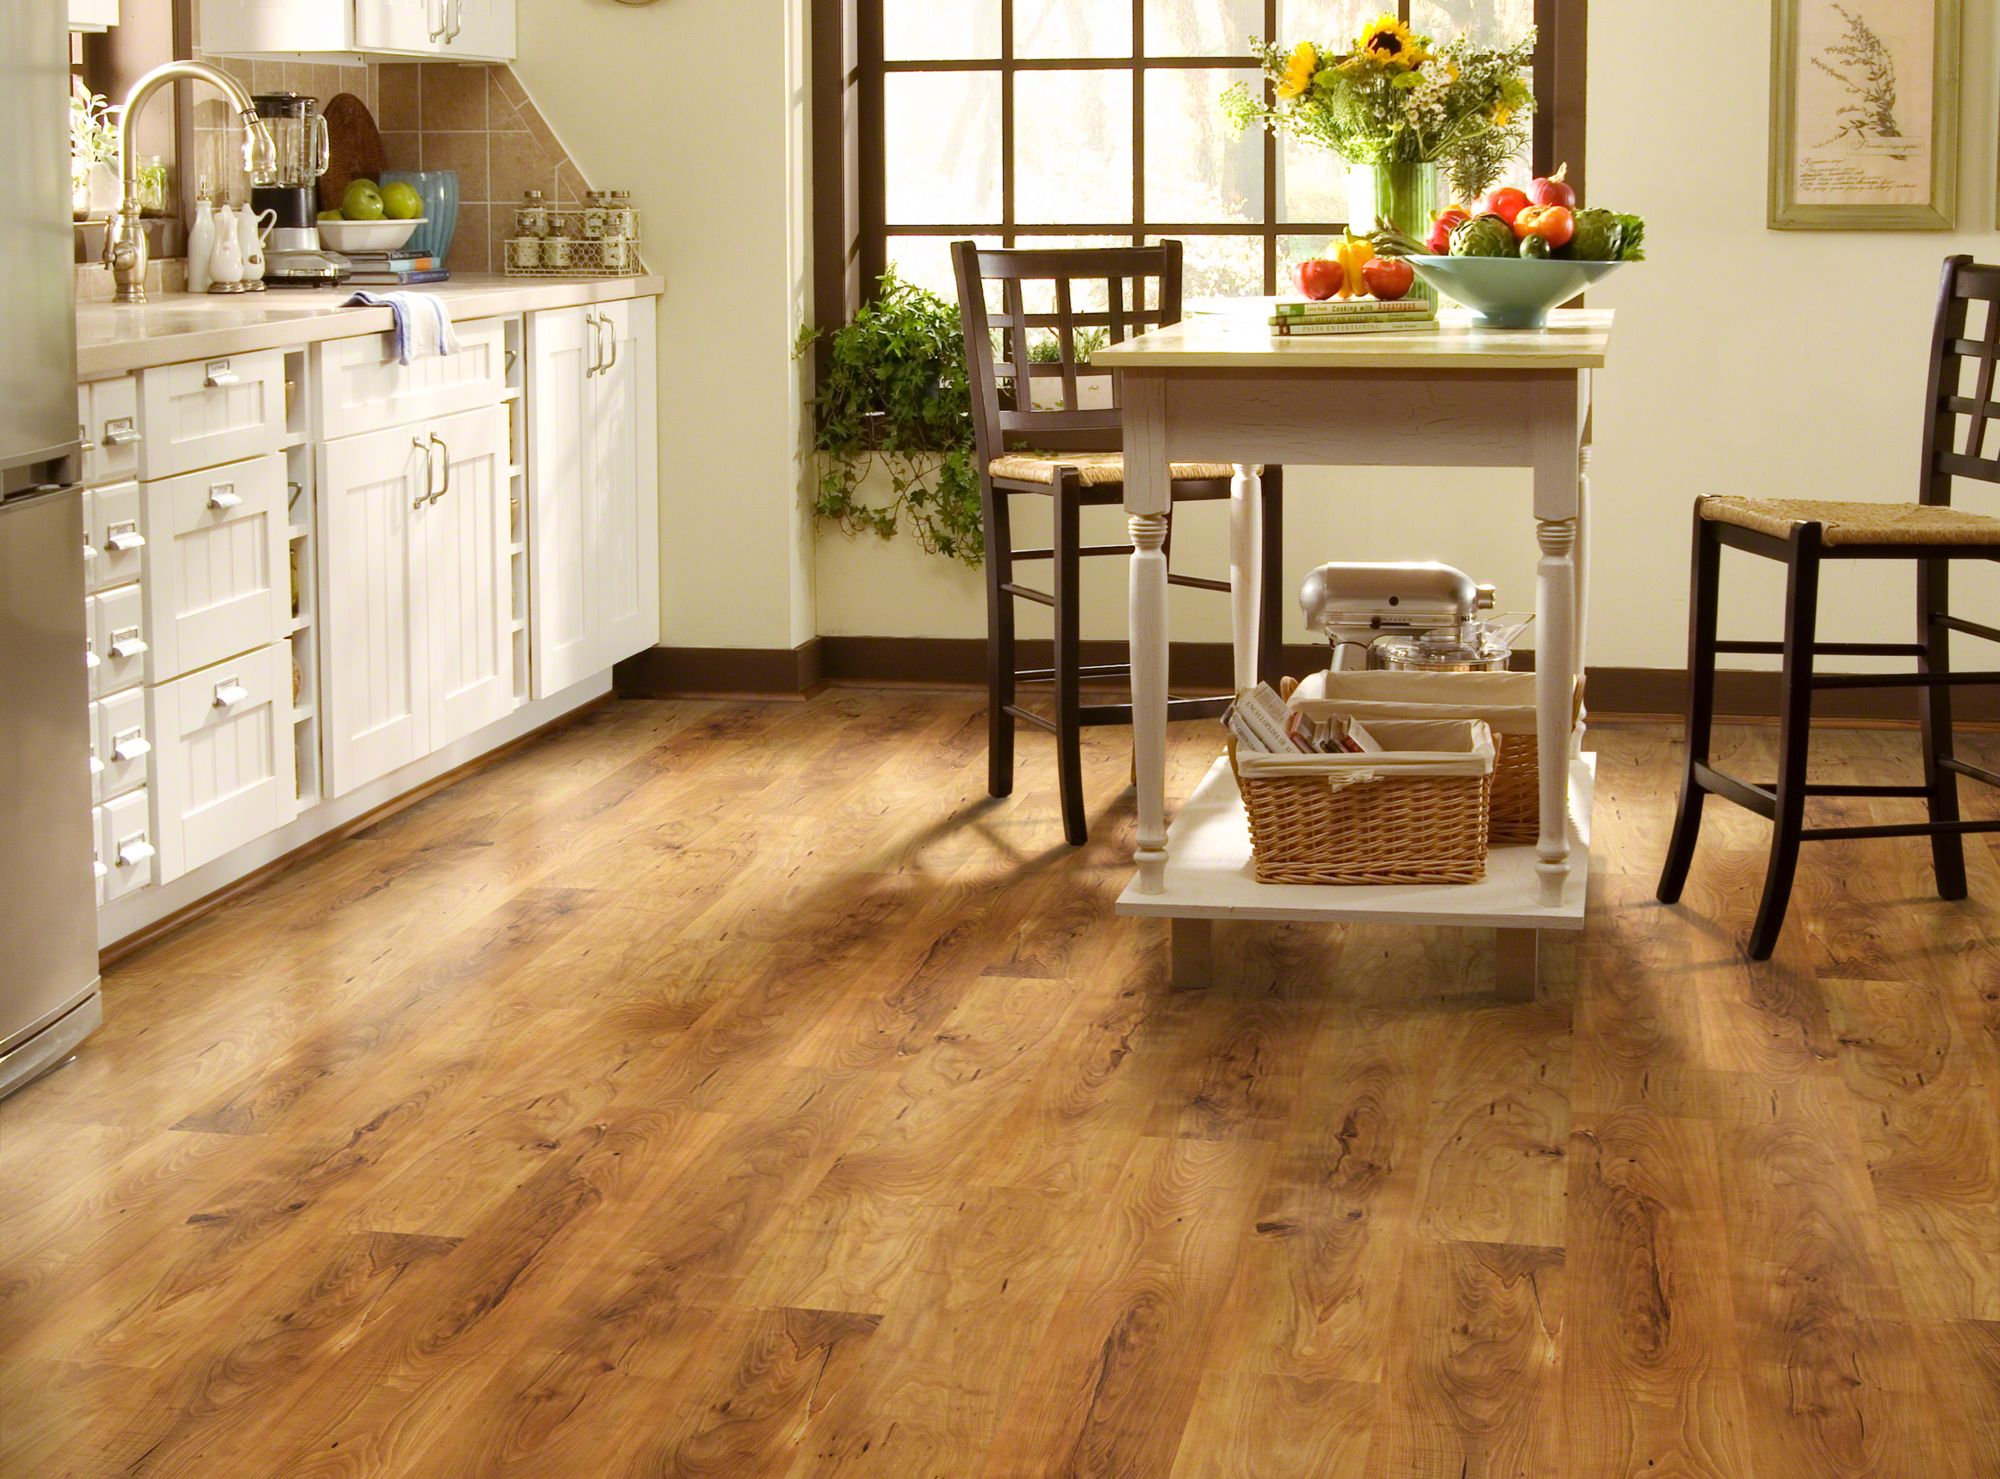 Laminate flooring houston hardwood flooring direct - Laminate or wood flooring ...